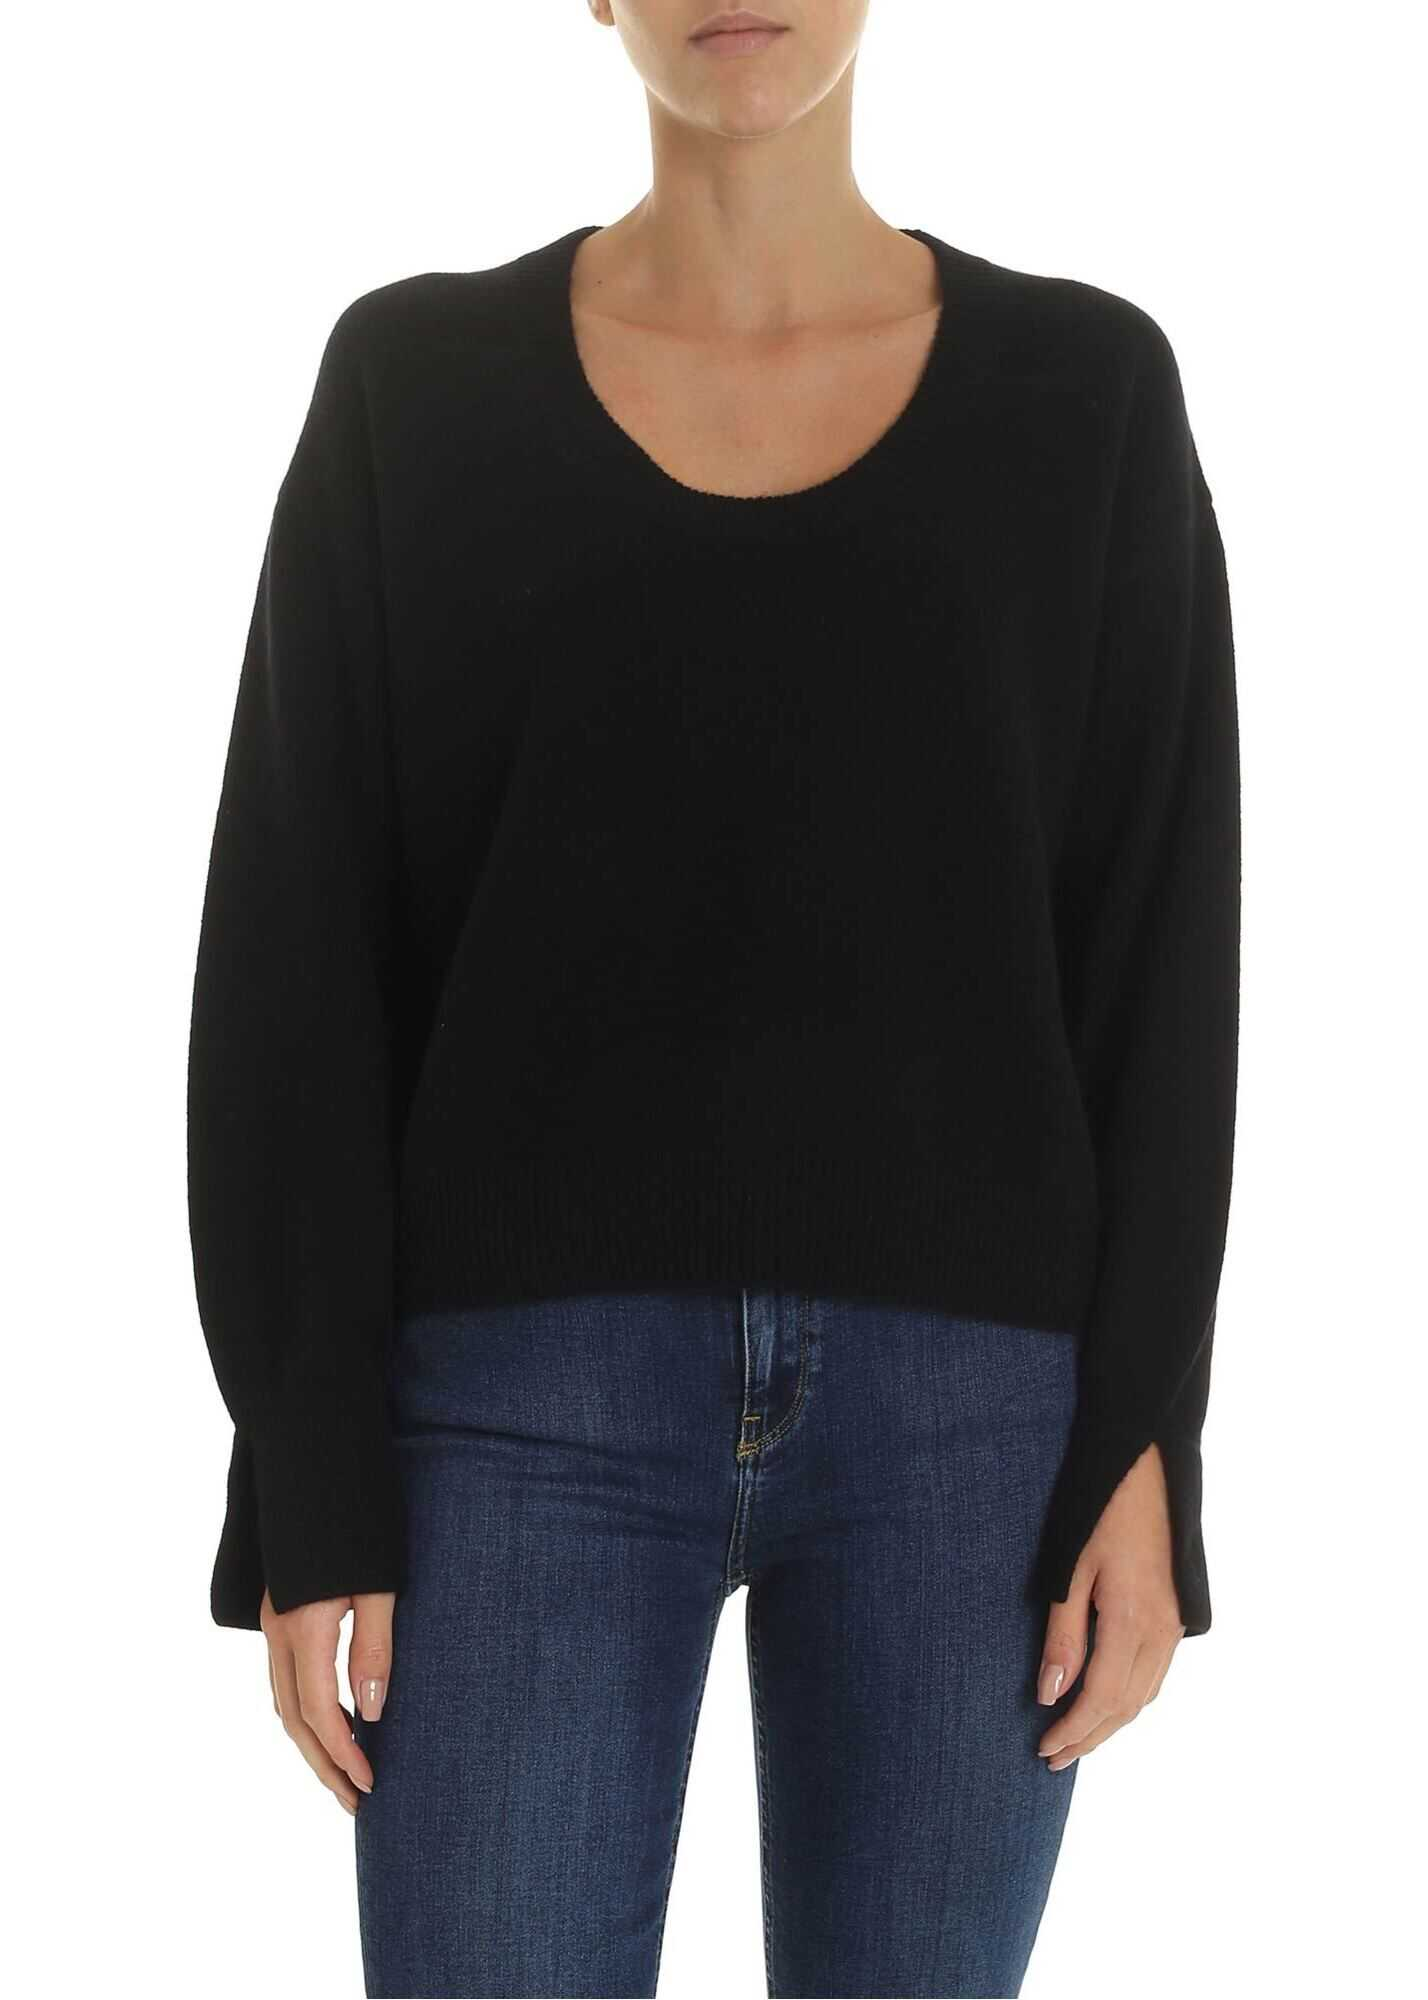 Oggi Pullover In Black thumbnail